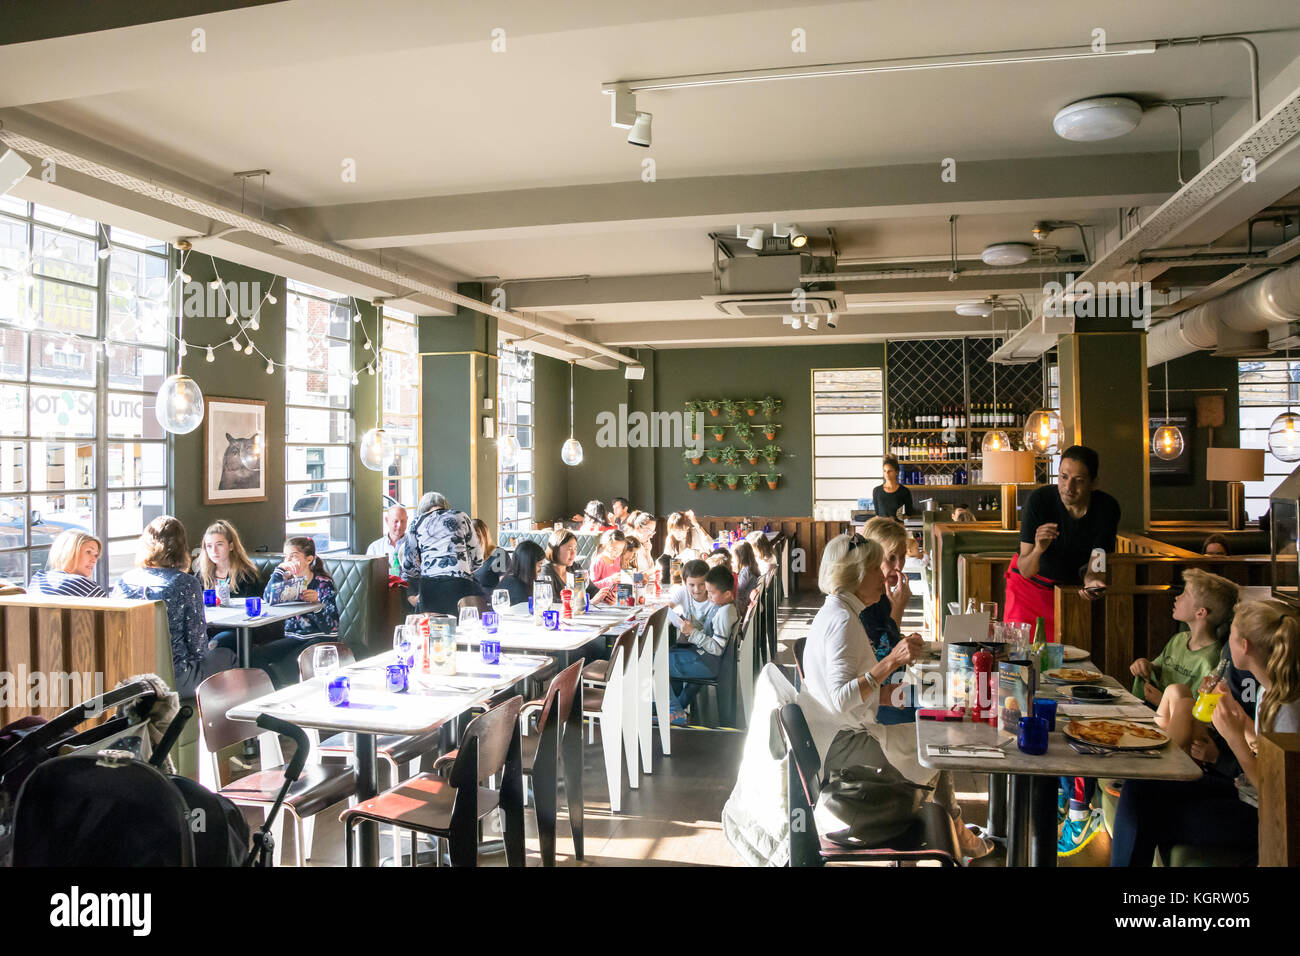 Restaurant interior uk stock photos